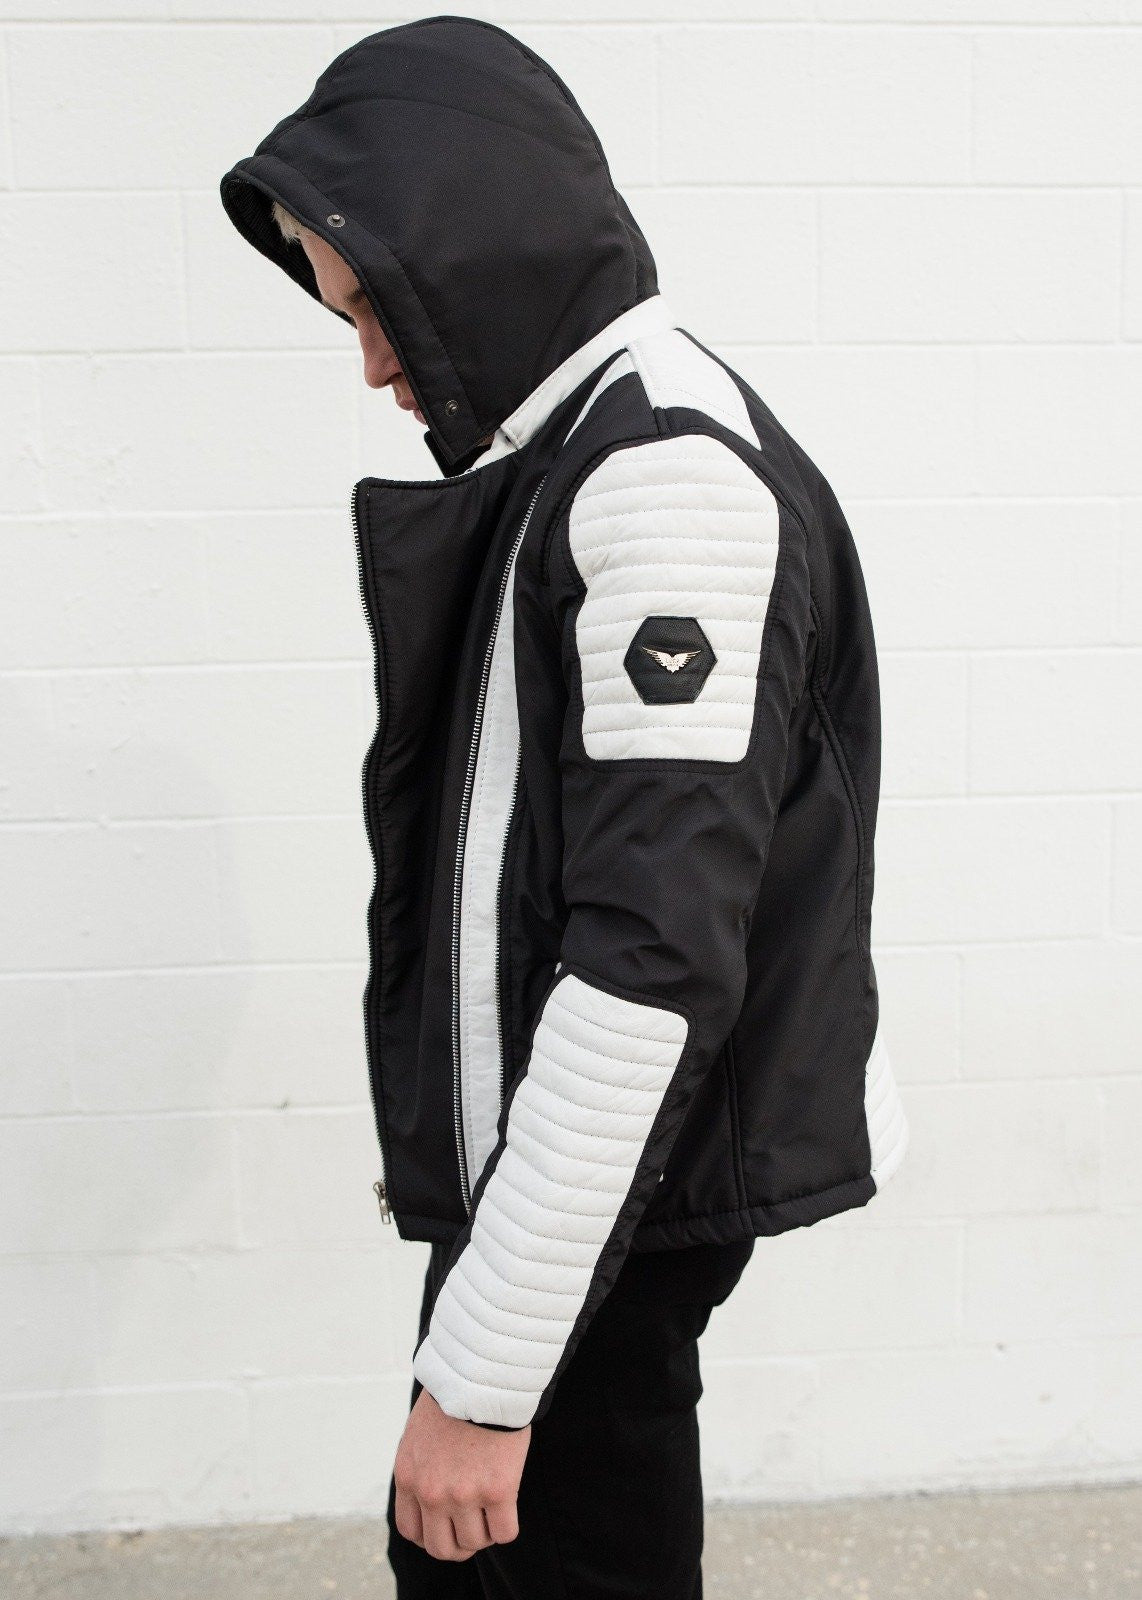 Mens Ninja Leather Jacket Black White